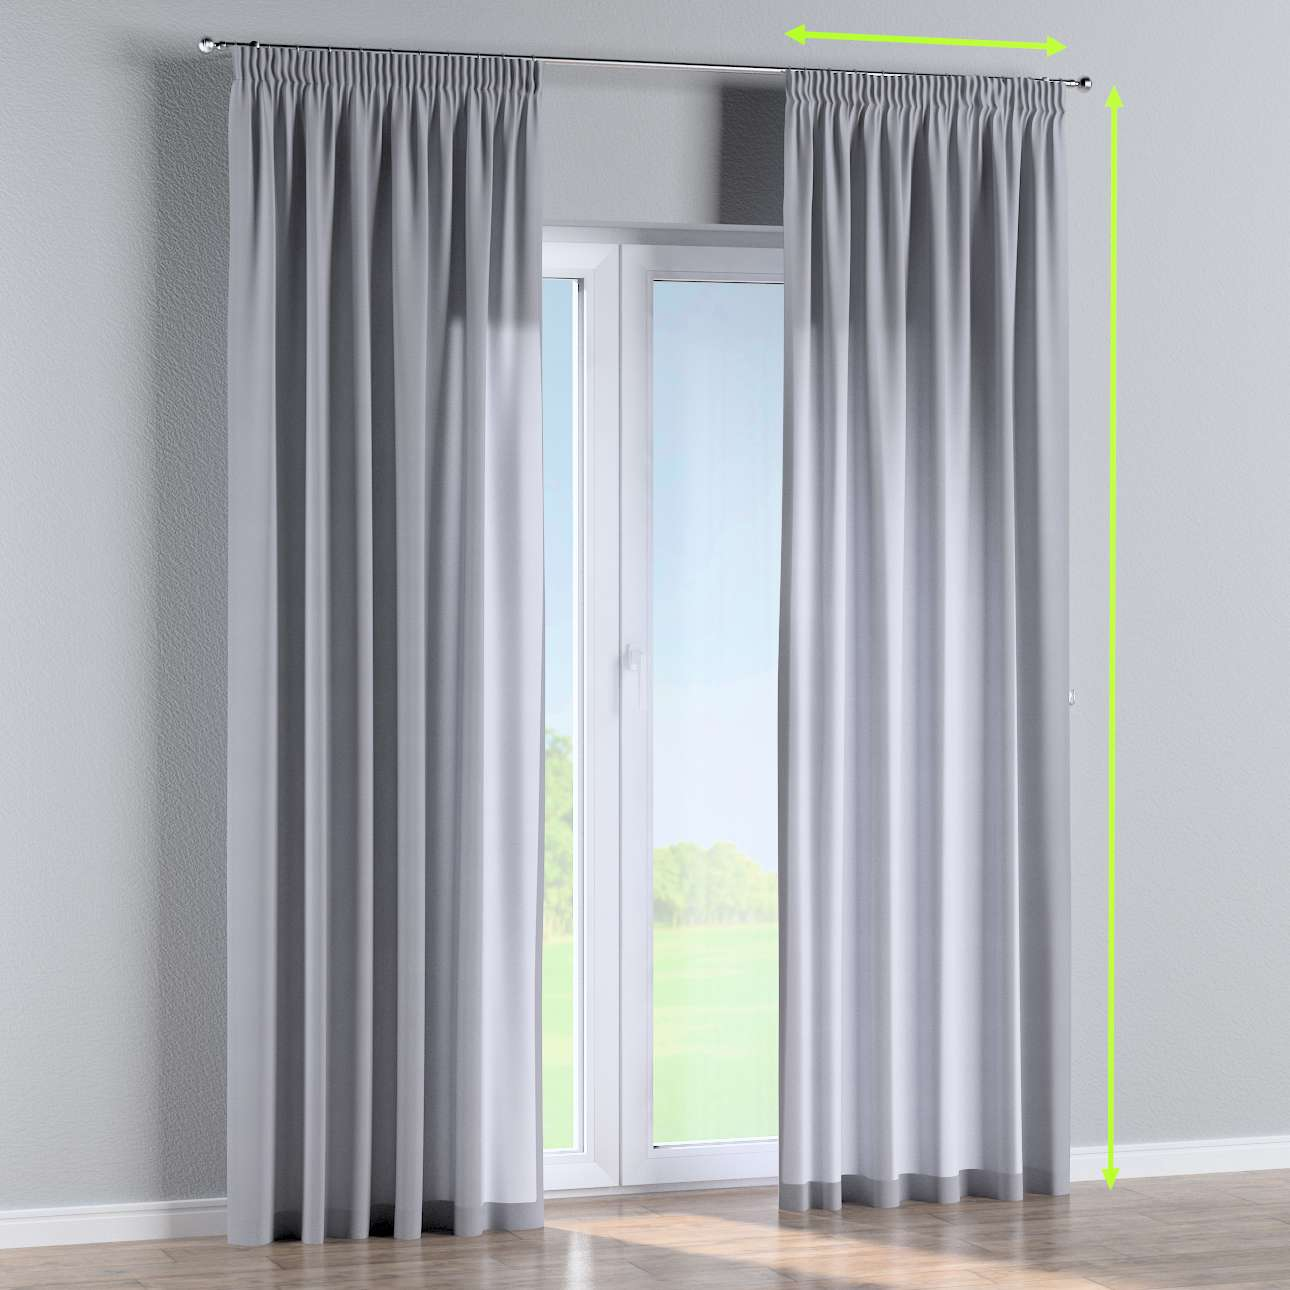 Pencil pleat lined curtains in collection Jupiter, fabric: 127-92